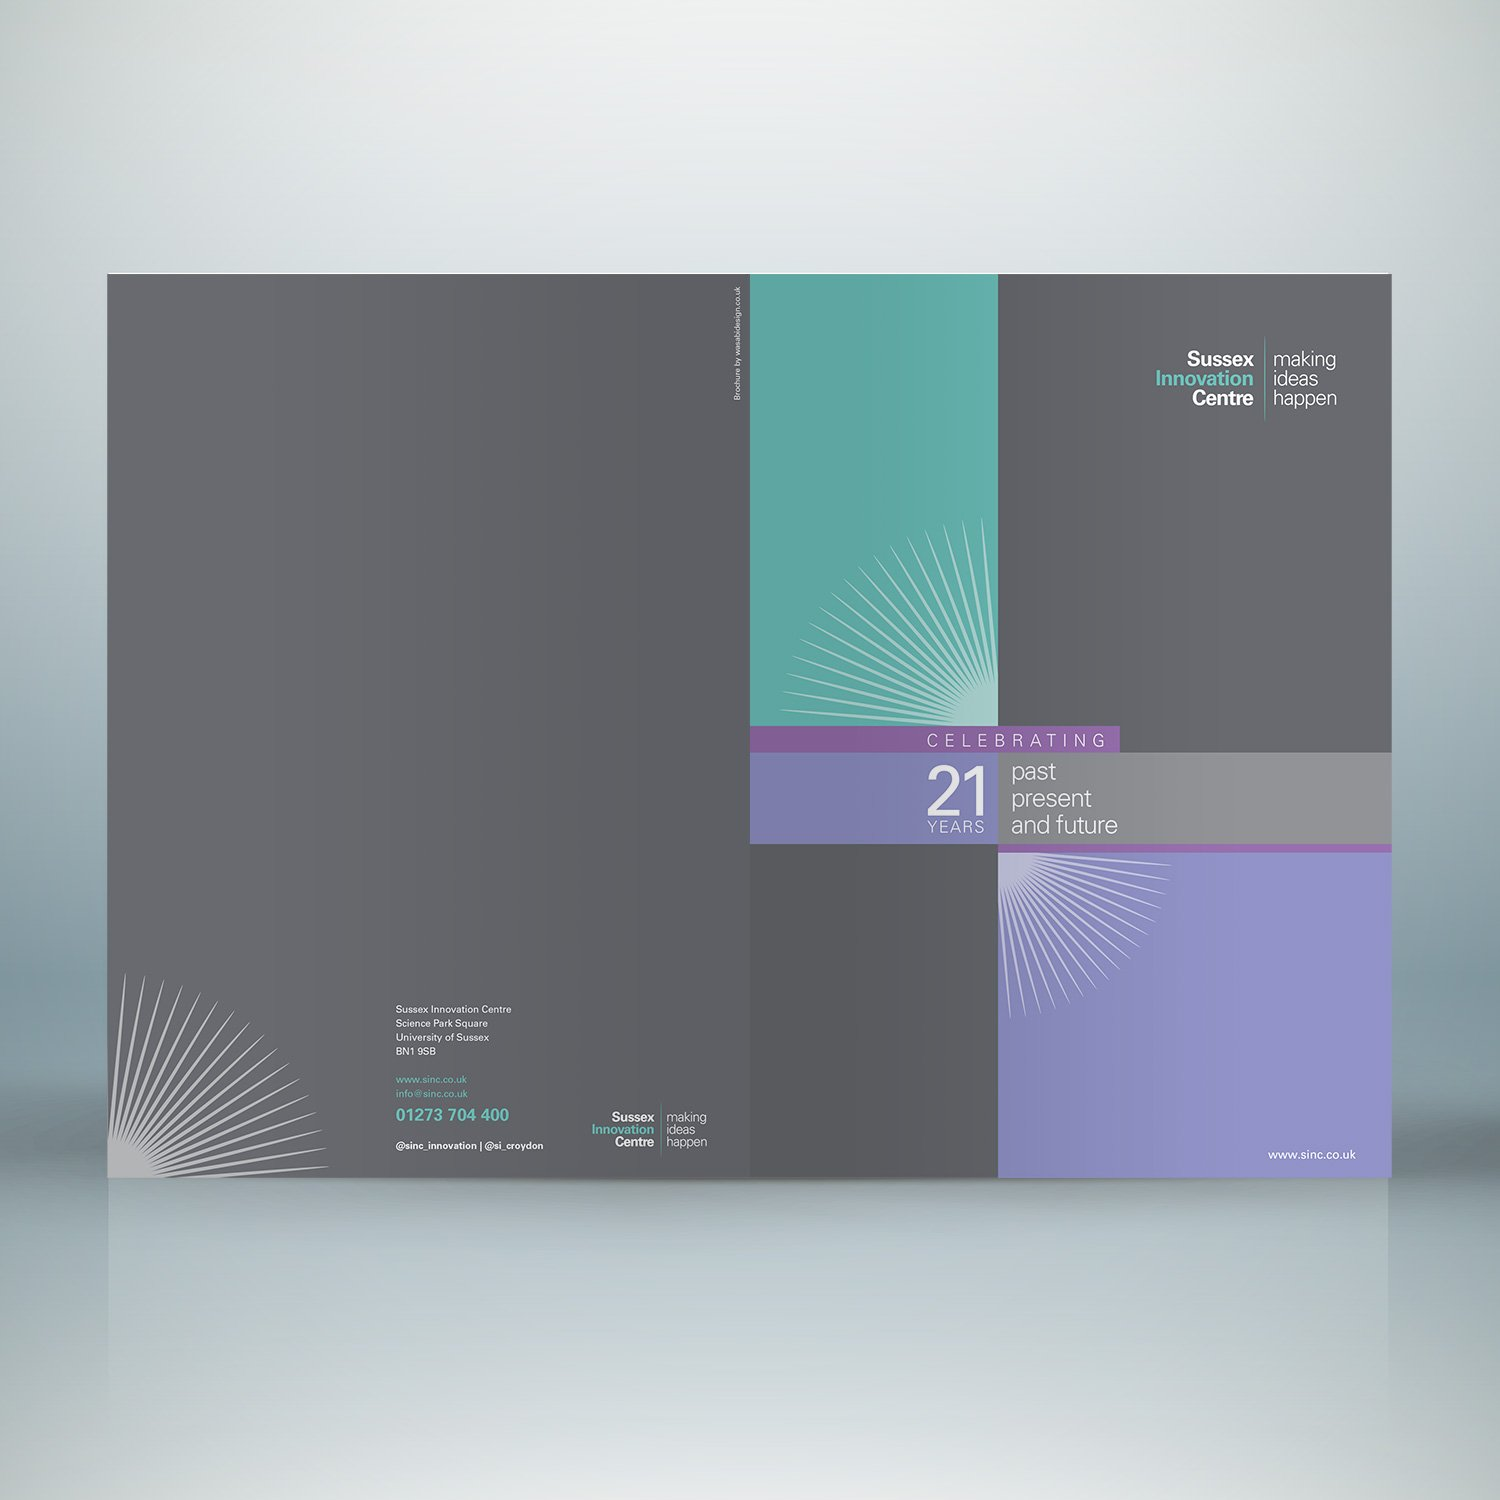 Sussex Innovation Centre brochure covers